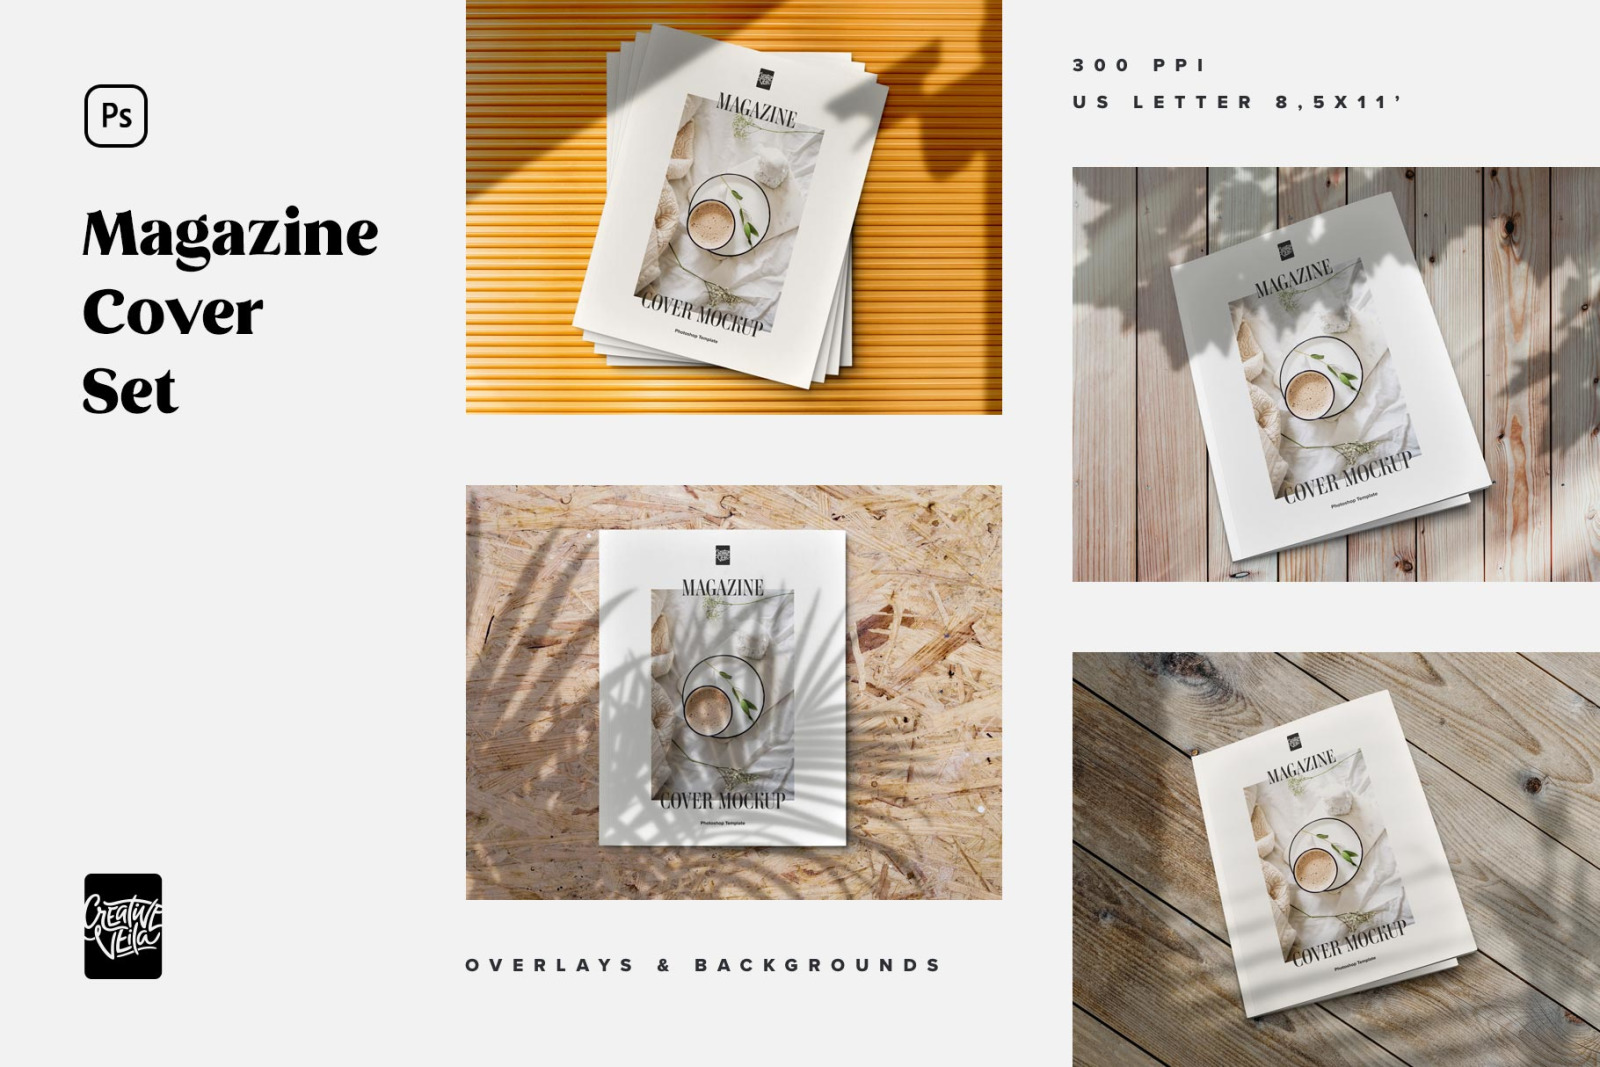 Download Magazine Cover Mockup Set In Stationery Mockups On Yellow Images Creative Store PSD Mockup Templates